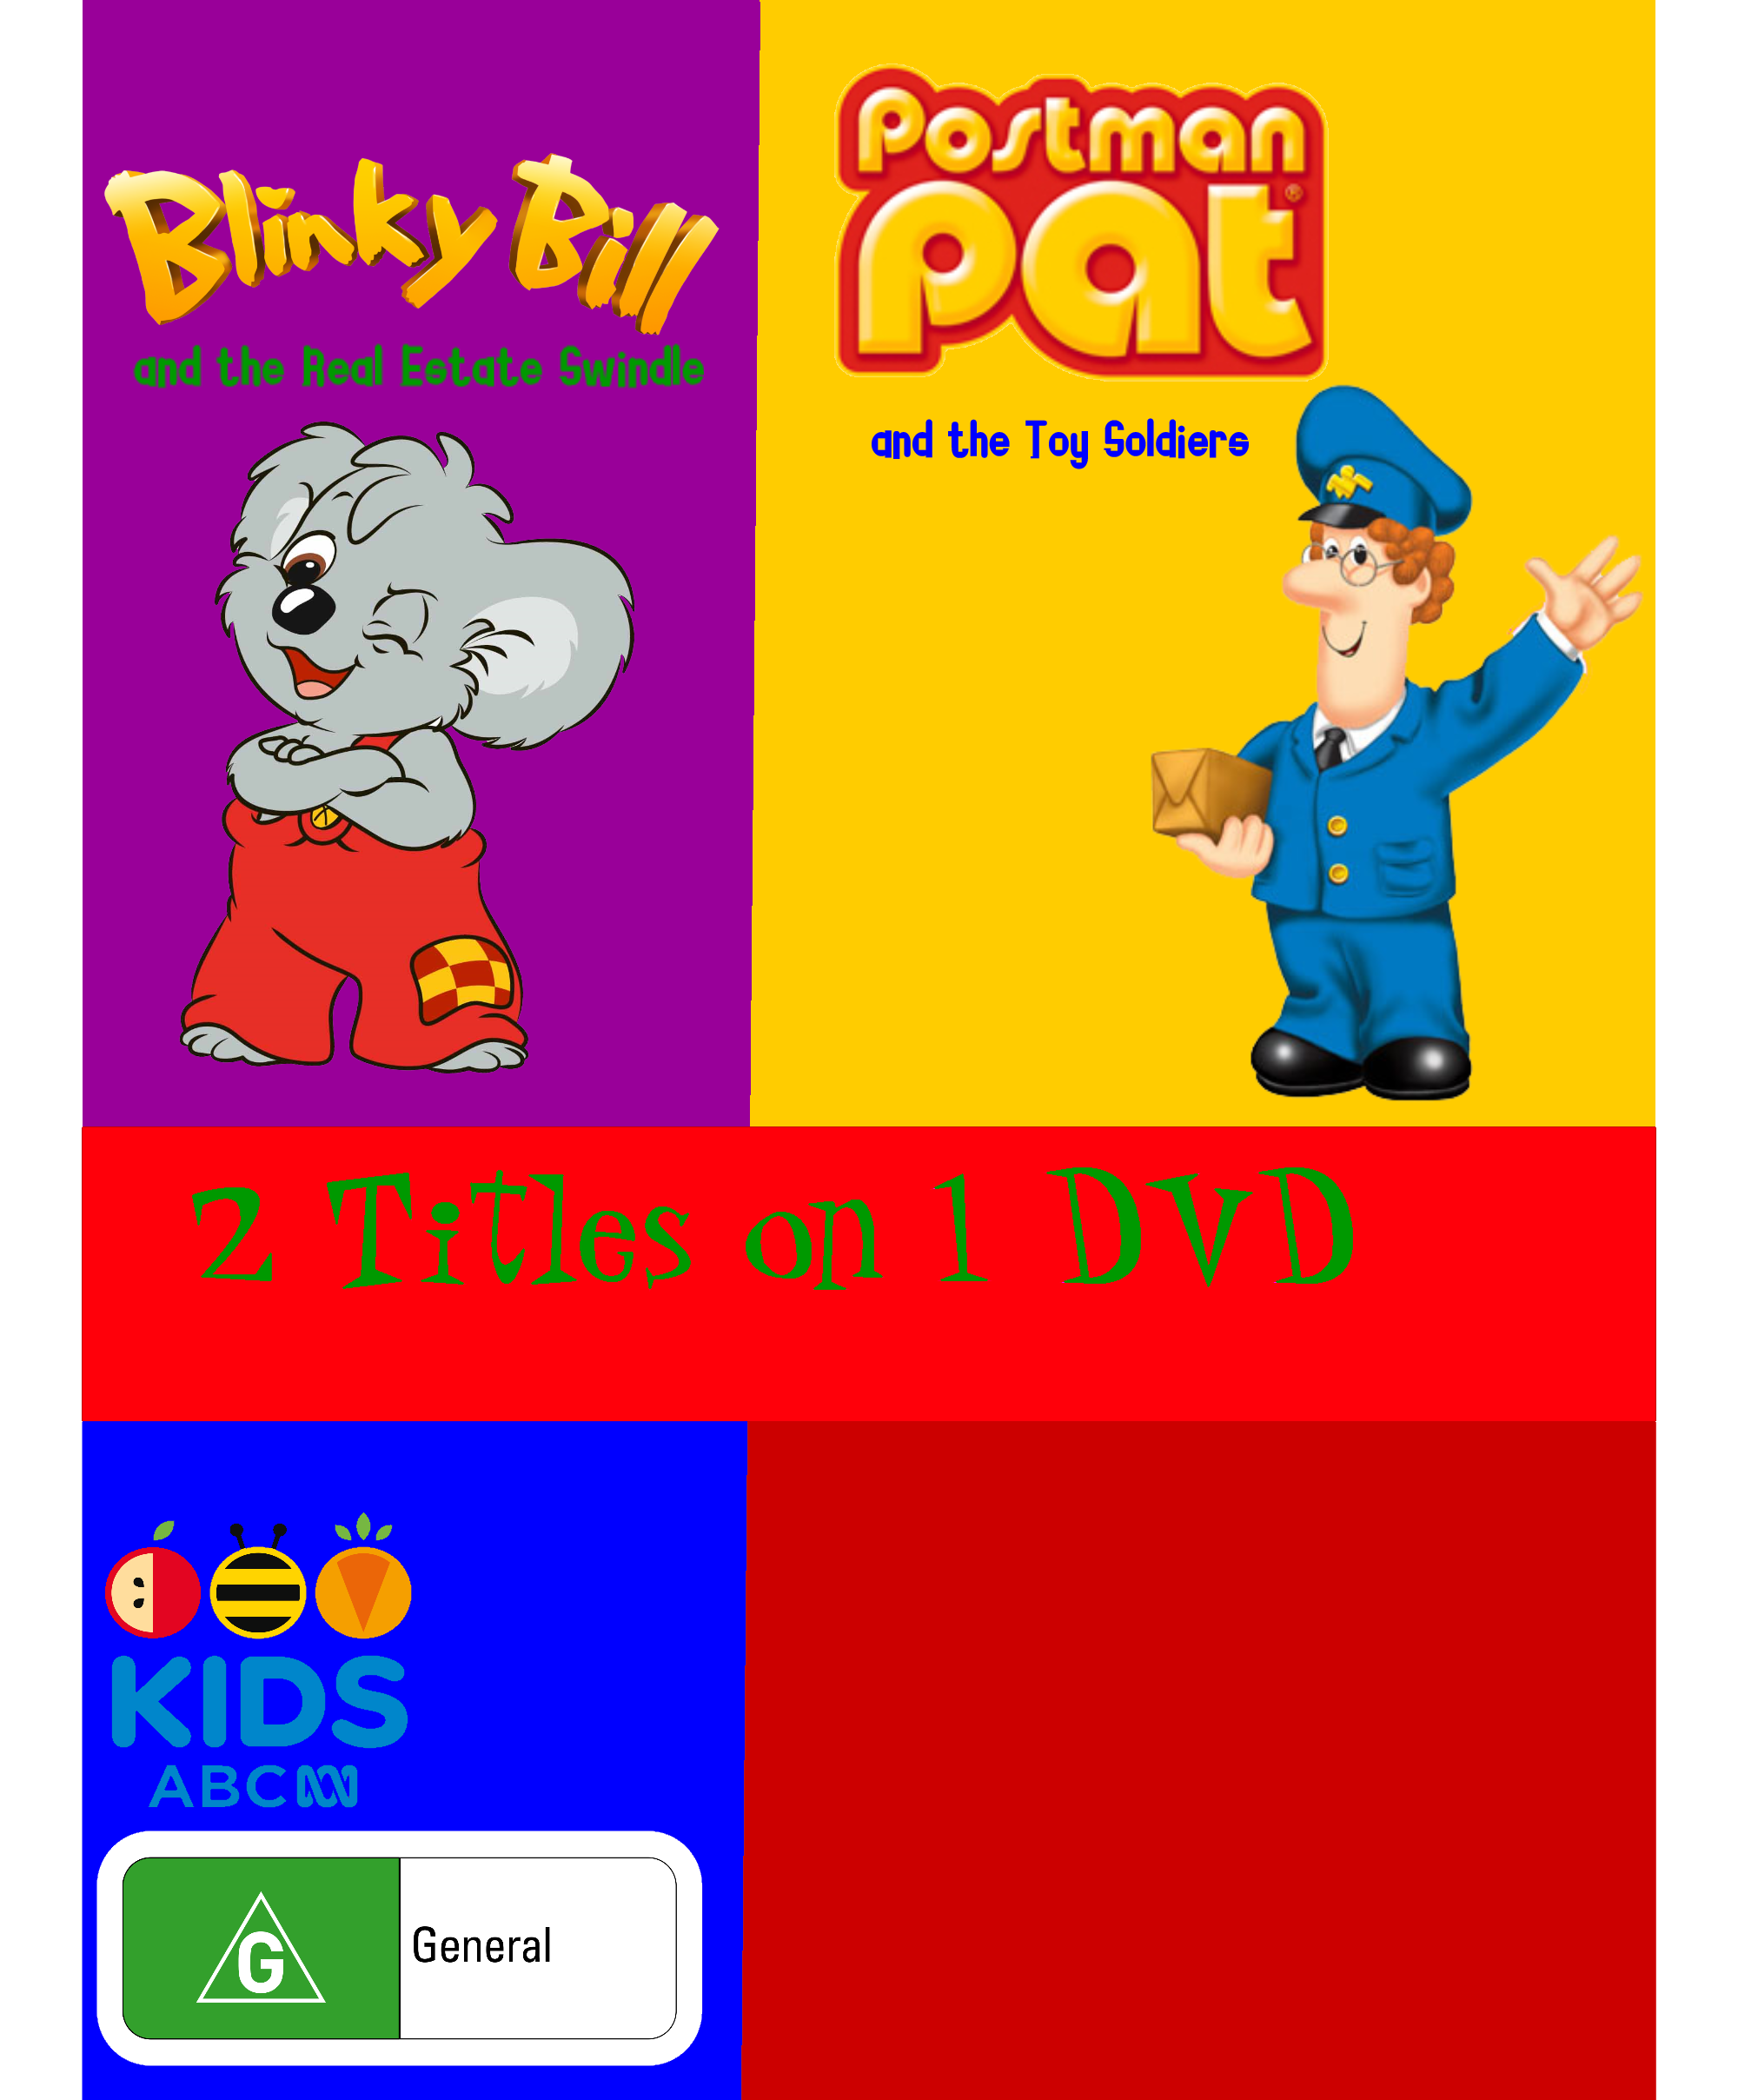 Blinky Bill and the Blue Mystery/Postman Pat and The Toy Soldiers